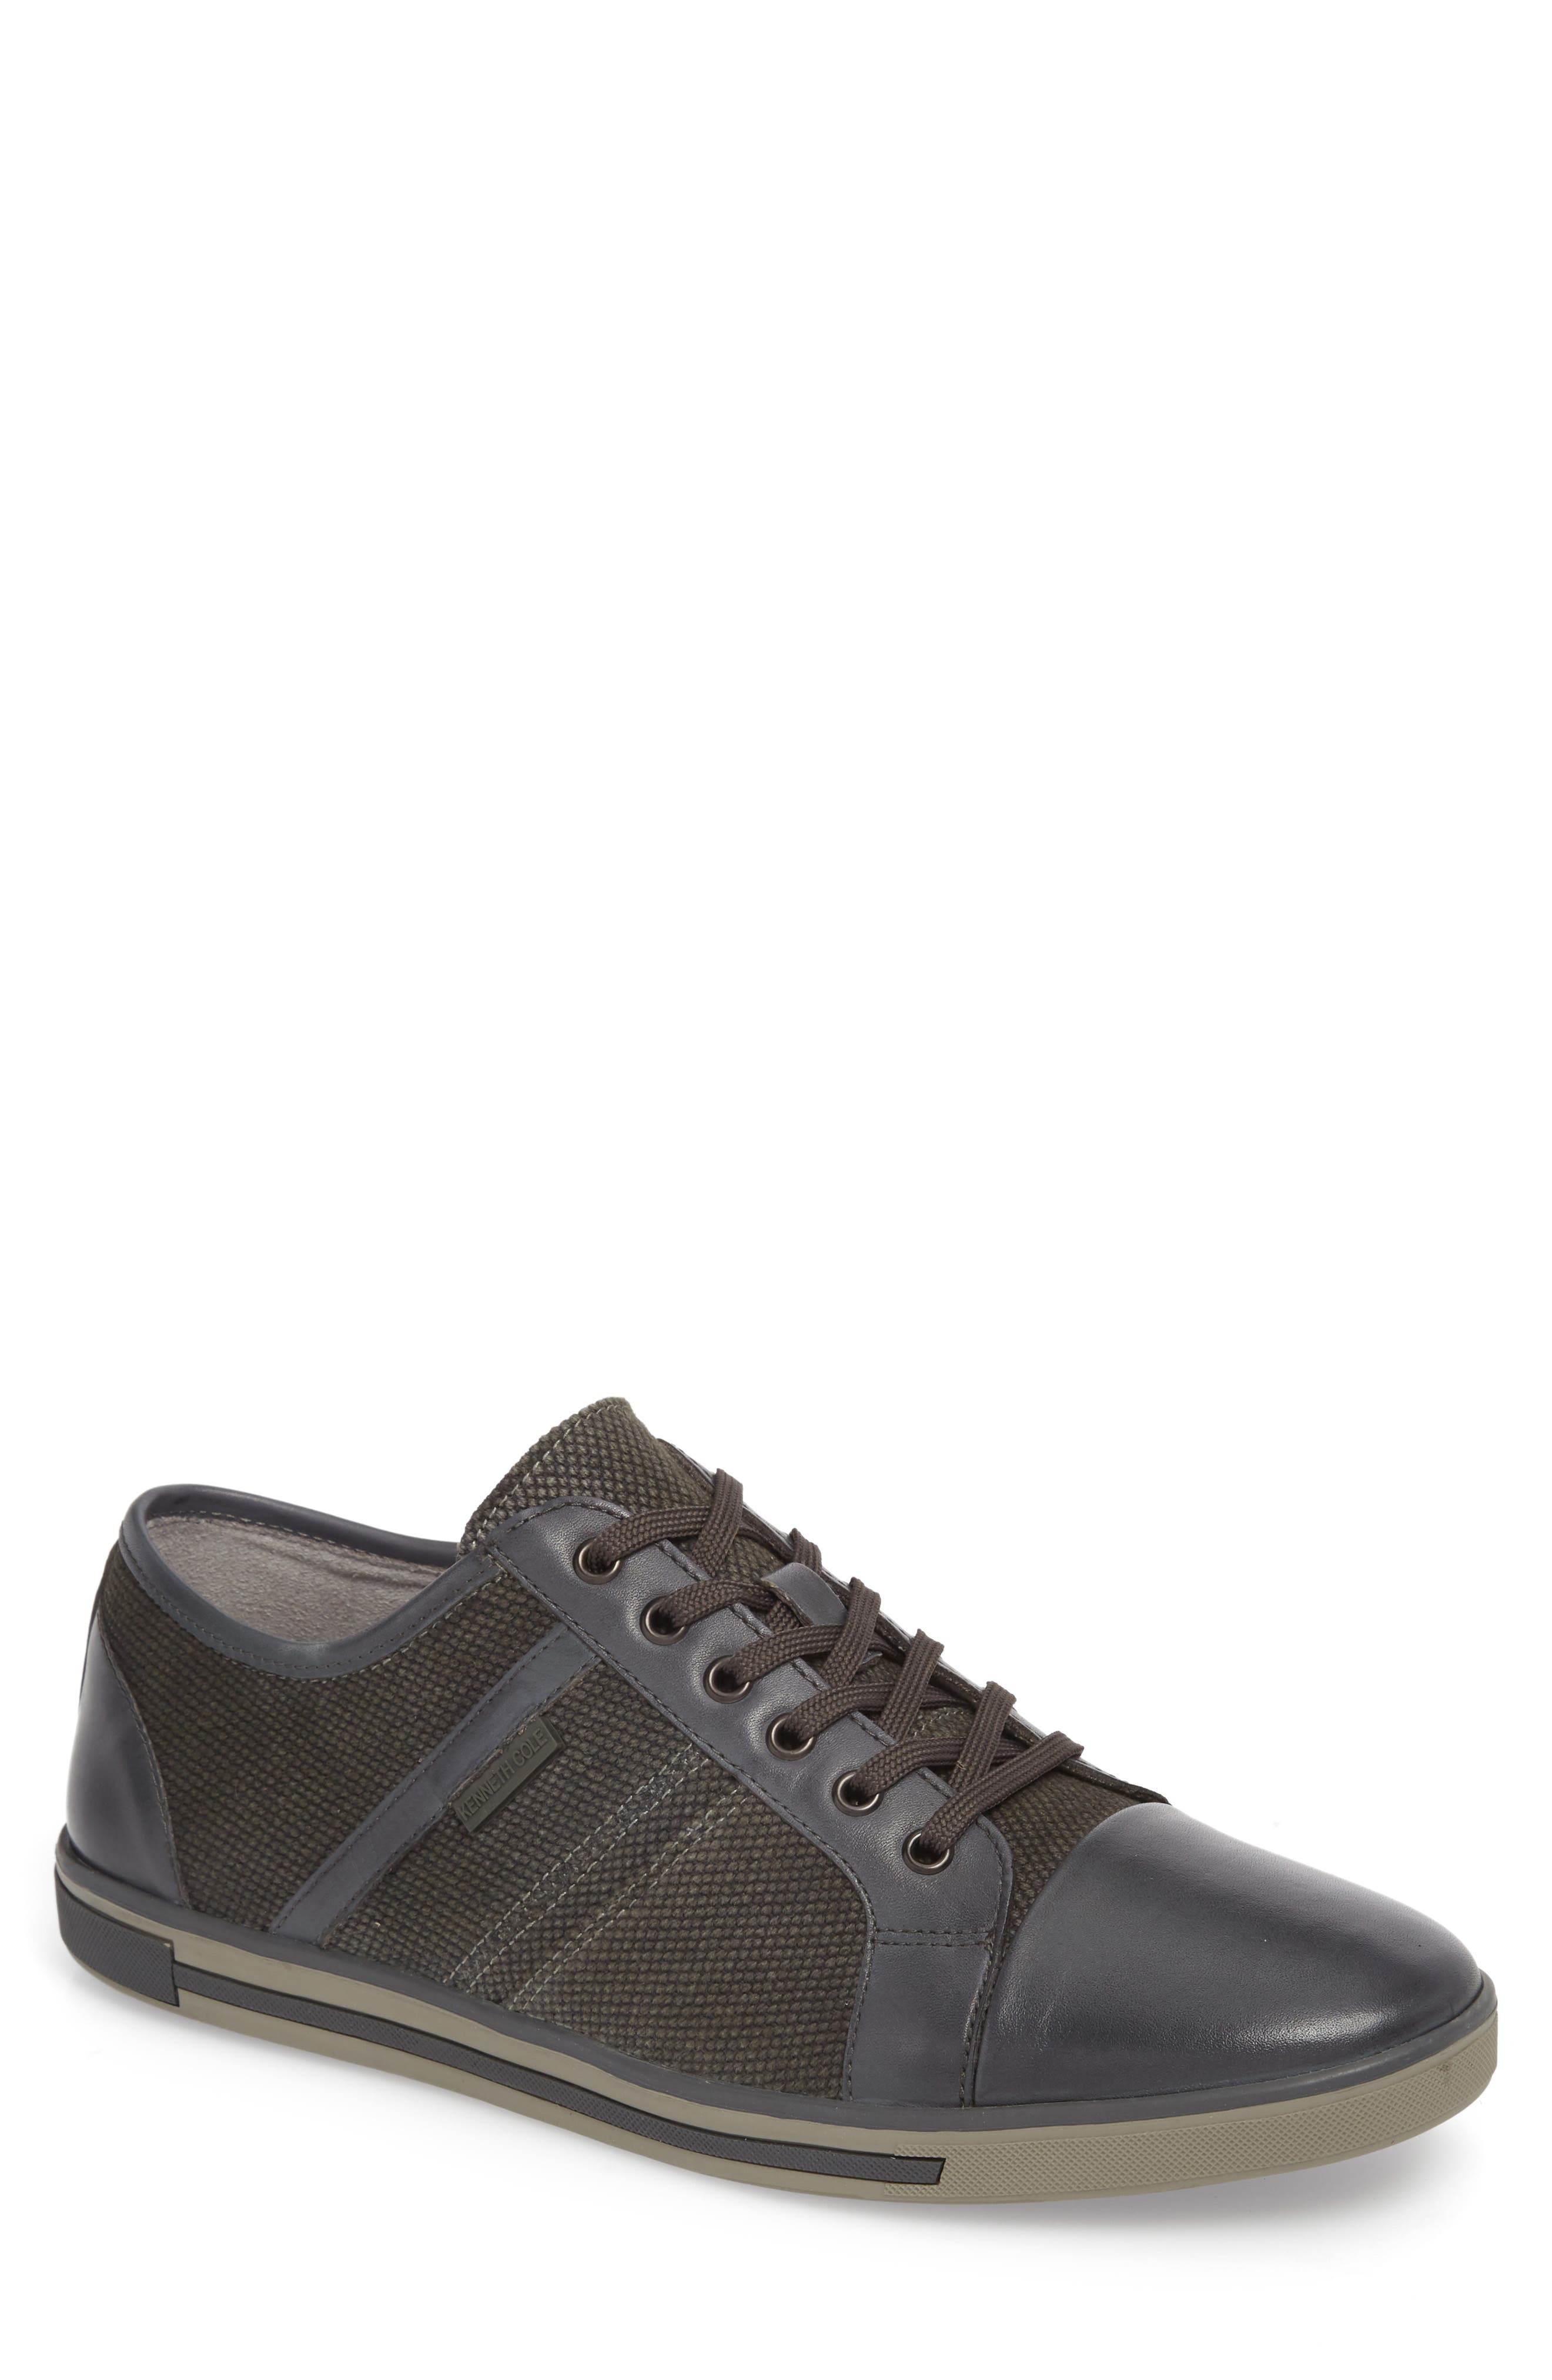 Mens Kenneth Cole New York Men's Brand Central Fashion Sneaker Outlet Online Sale Size 45